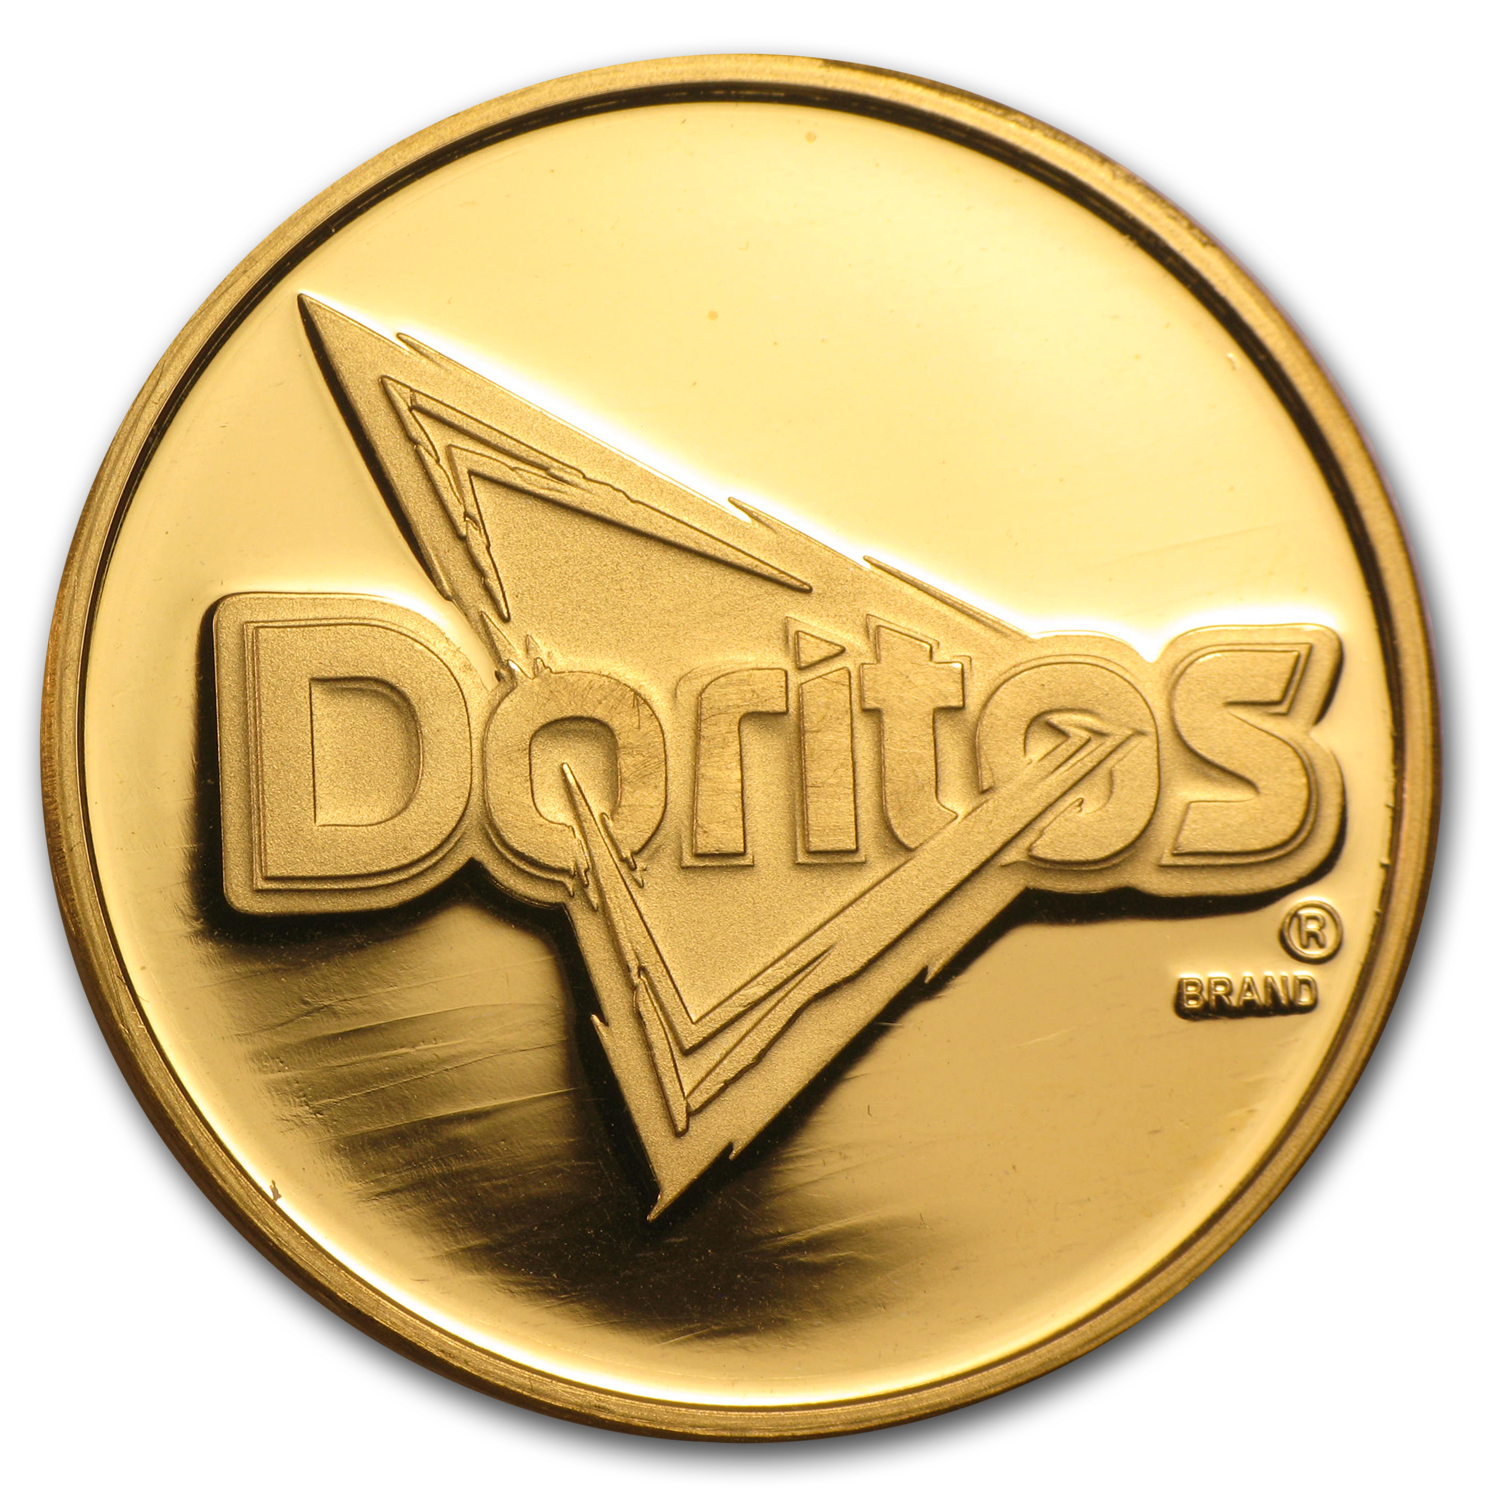 1 oz Gold Round - Doritos For The Bold (w/Box & COA)